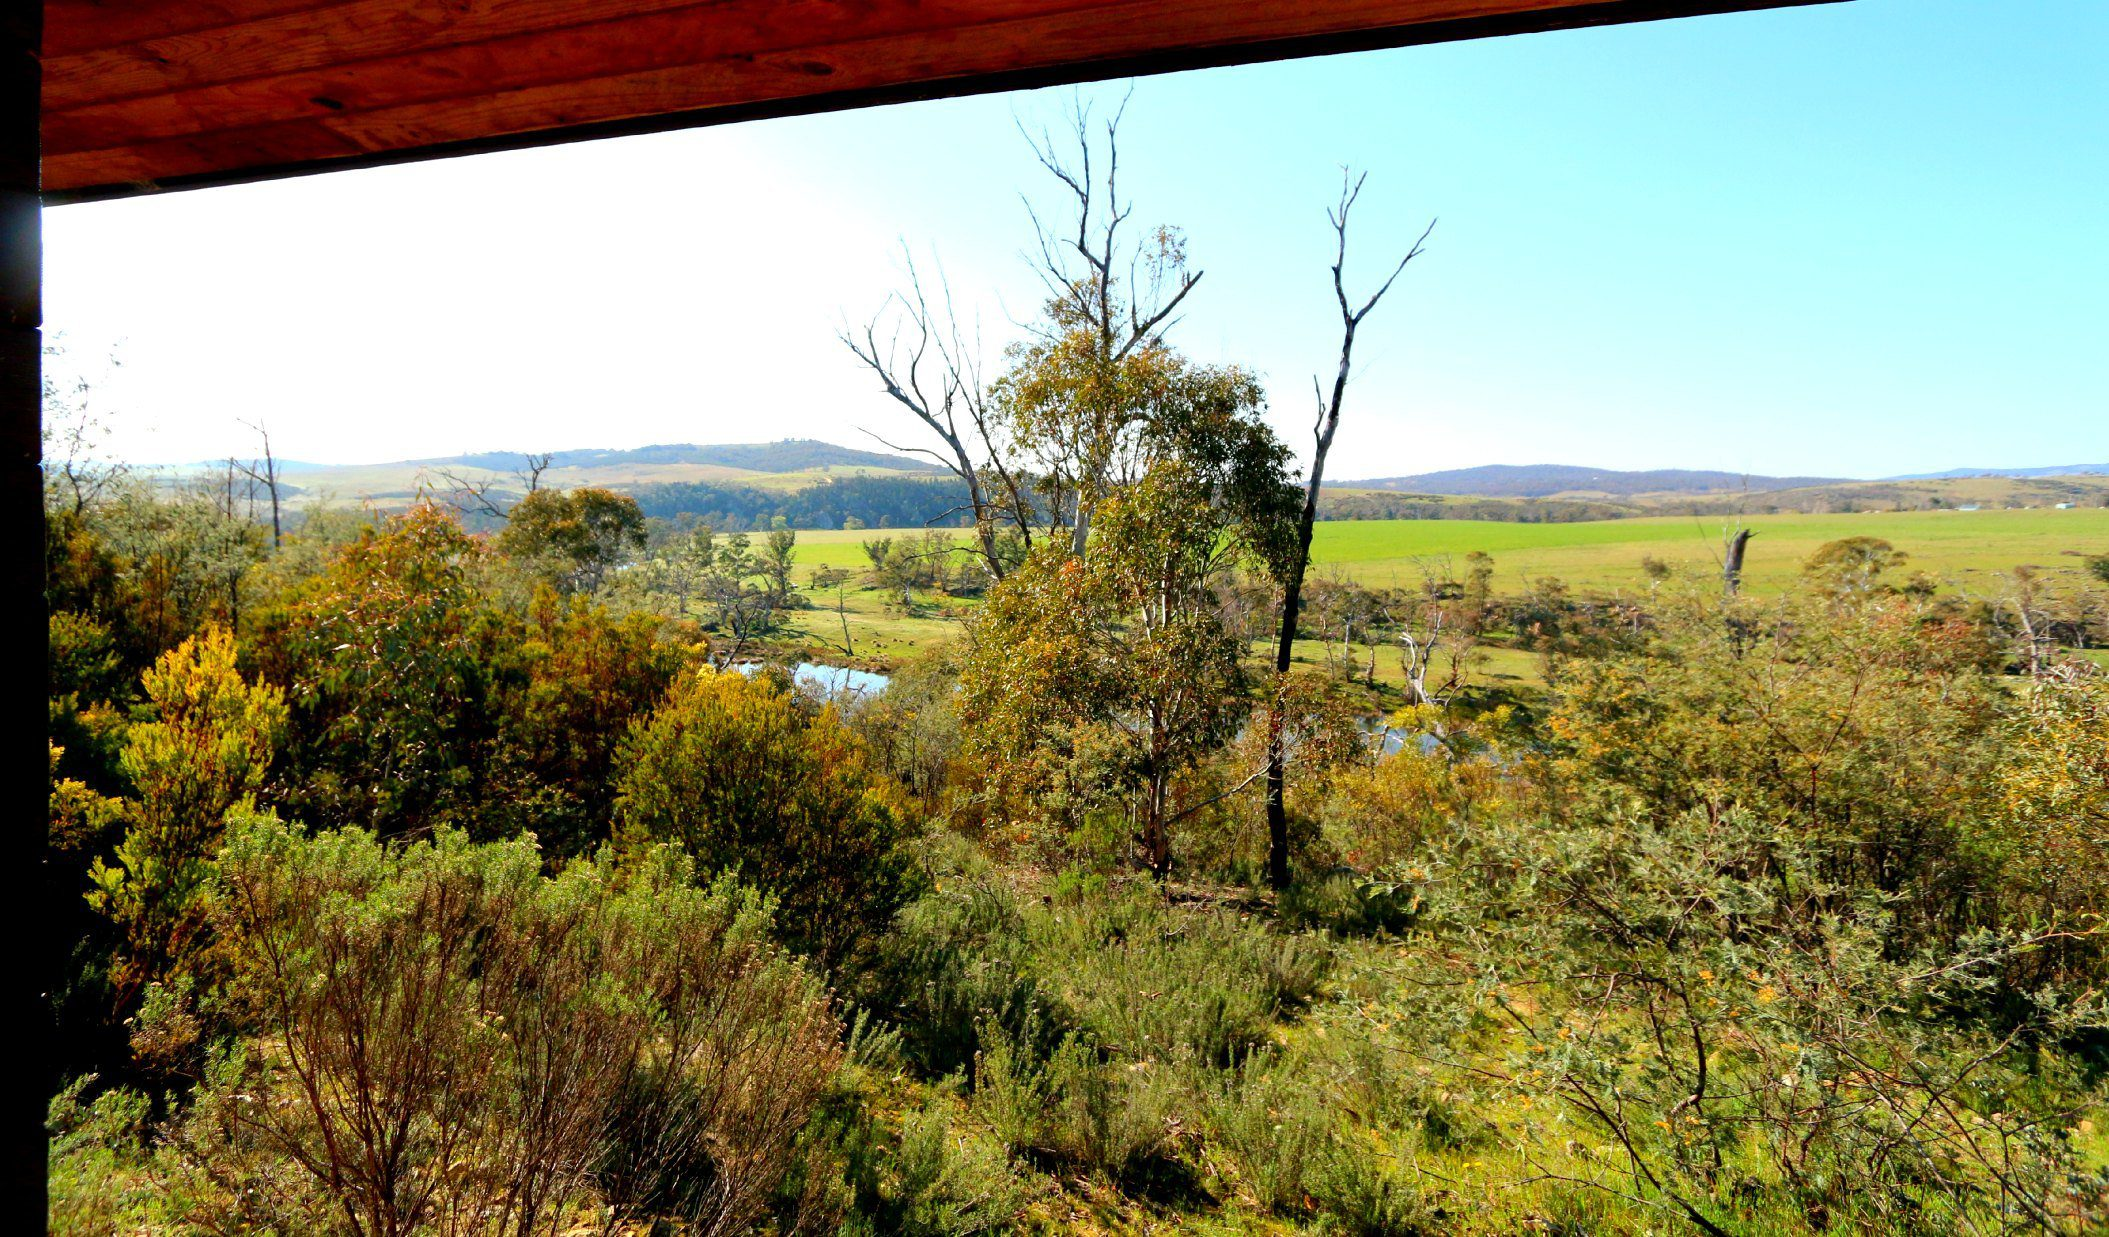 The view from our cabin at Snowy River Cabins near Jindabyne Australia